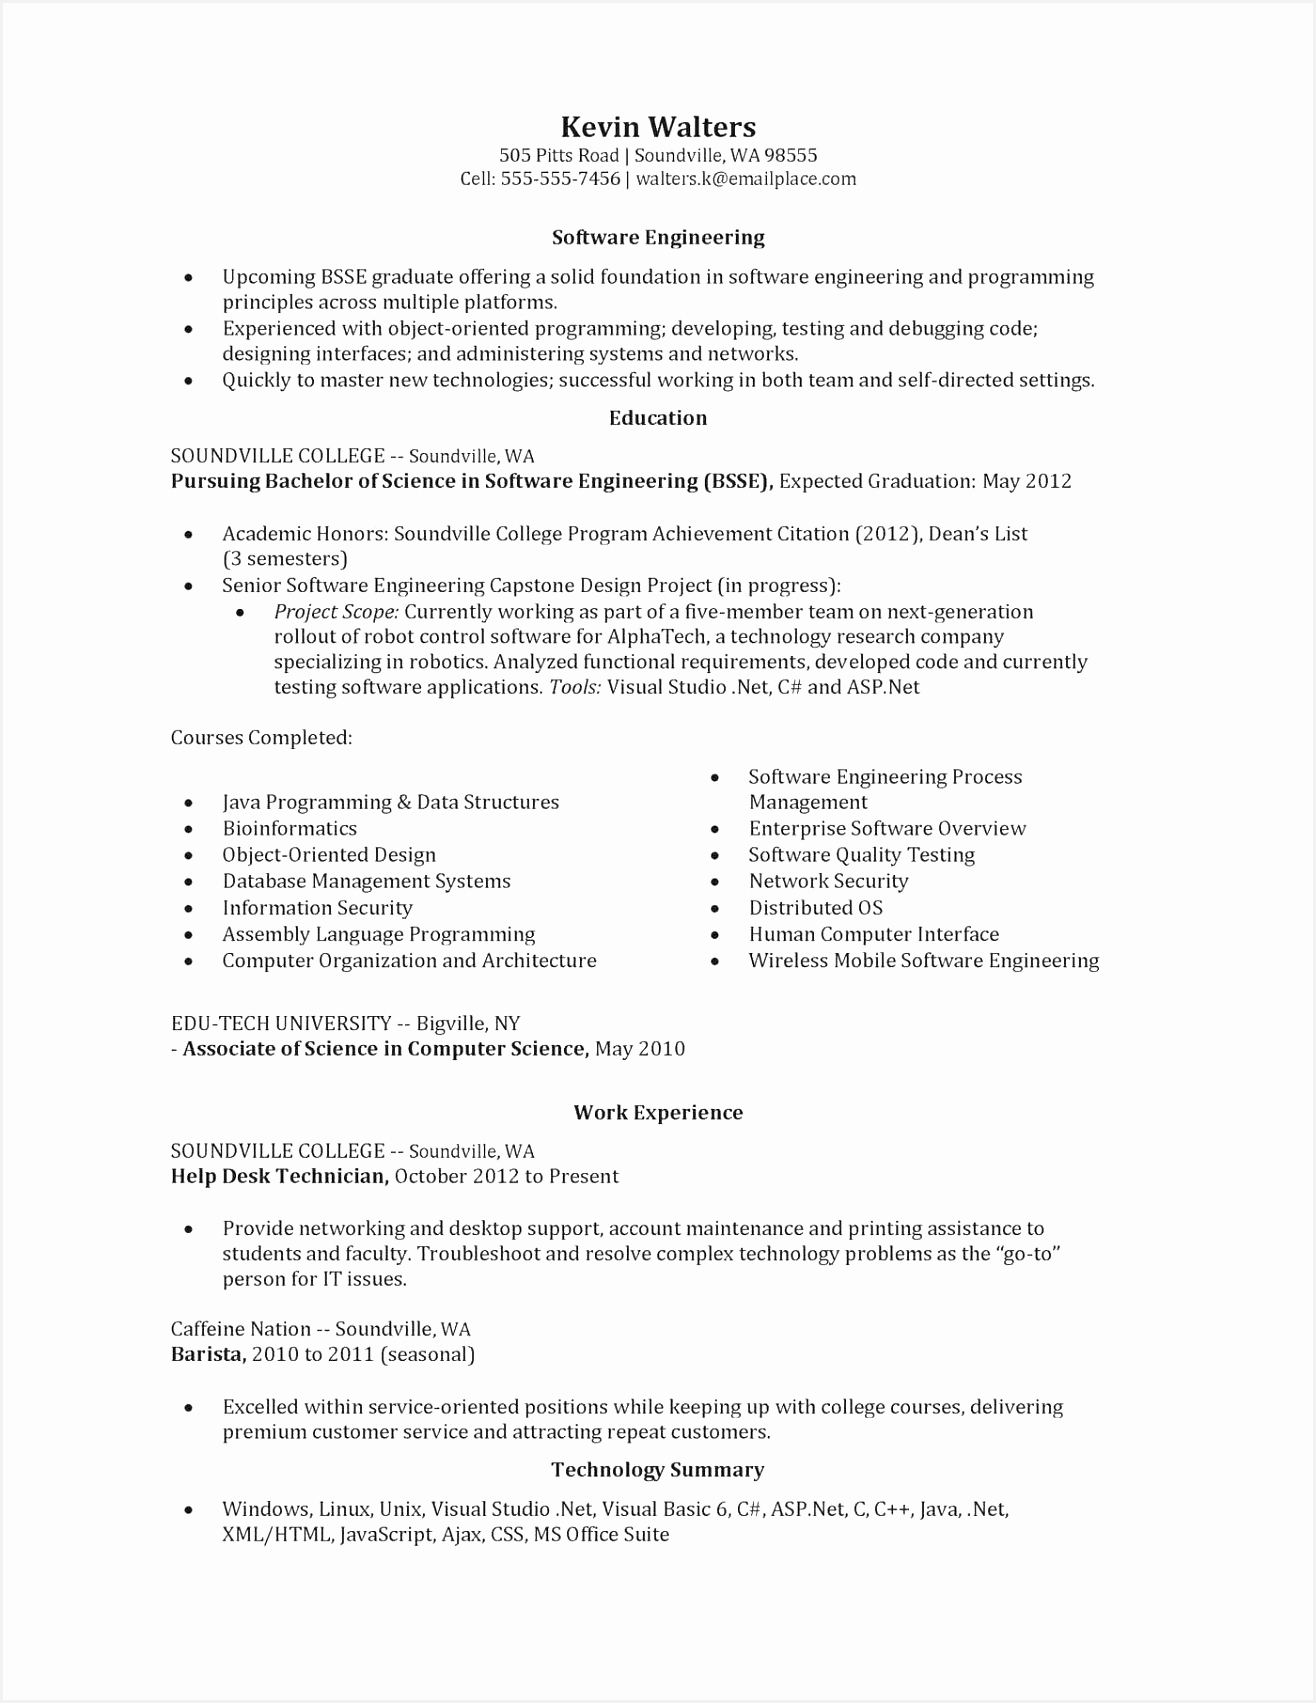 Sample Bank Management Resume Tcrrr New Banking Resume Sample Luxury Lpn Resume Sample New Line Producer Of Sample Bank Management Resume Waafg Fresh Banking Skills for Resume Beautiful 25 New Property Manager Resume